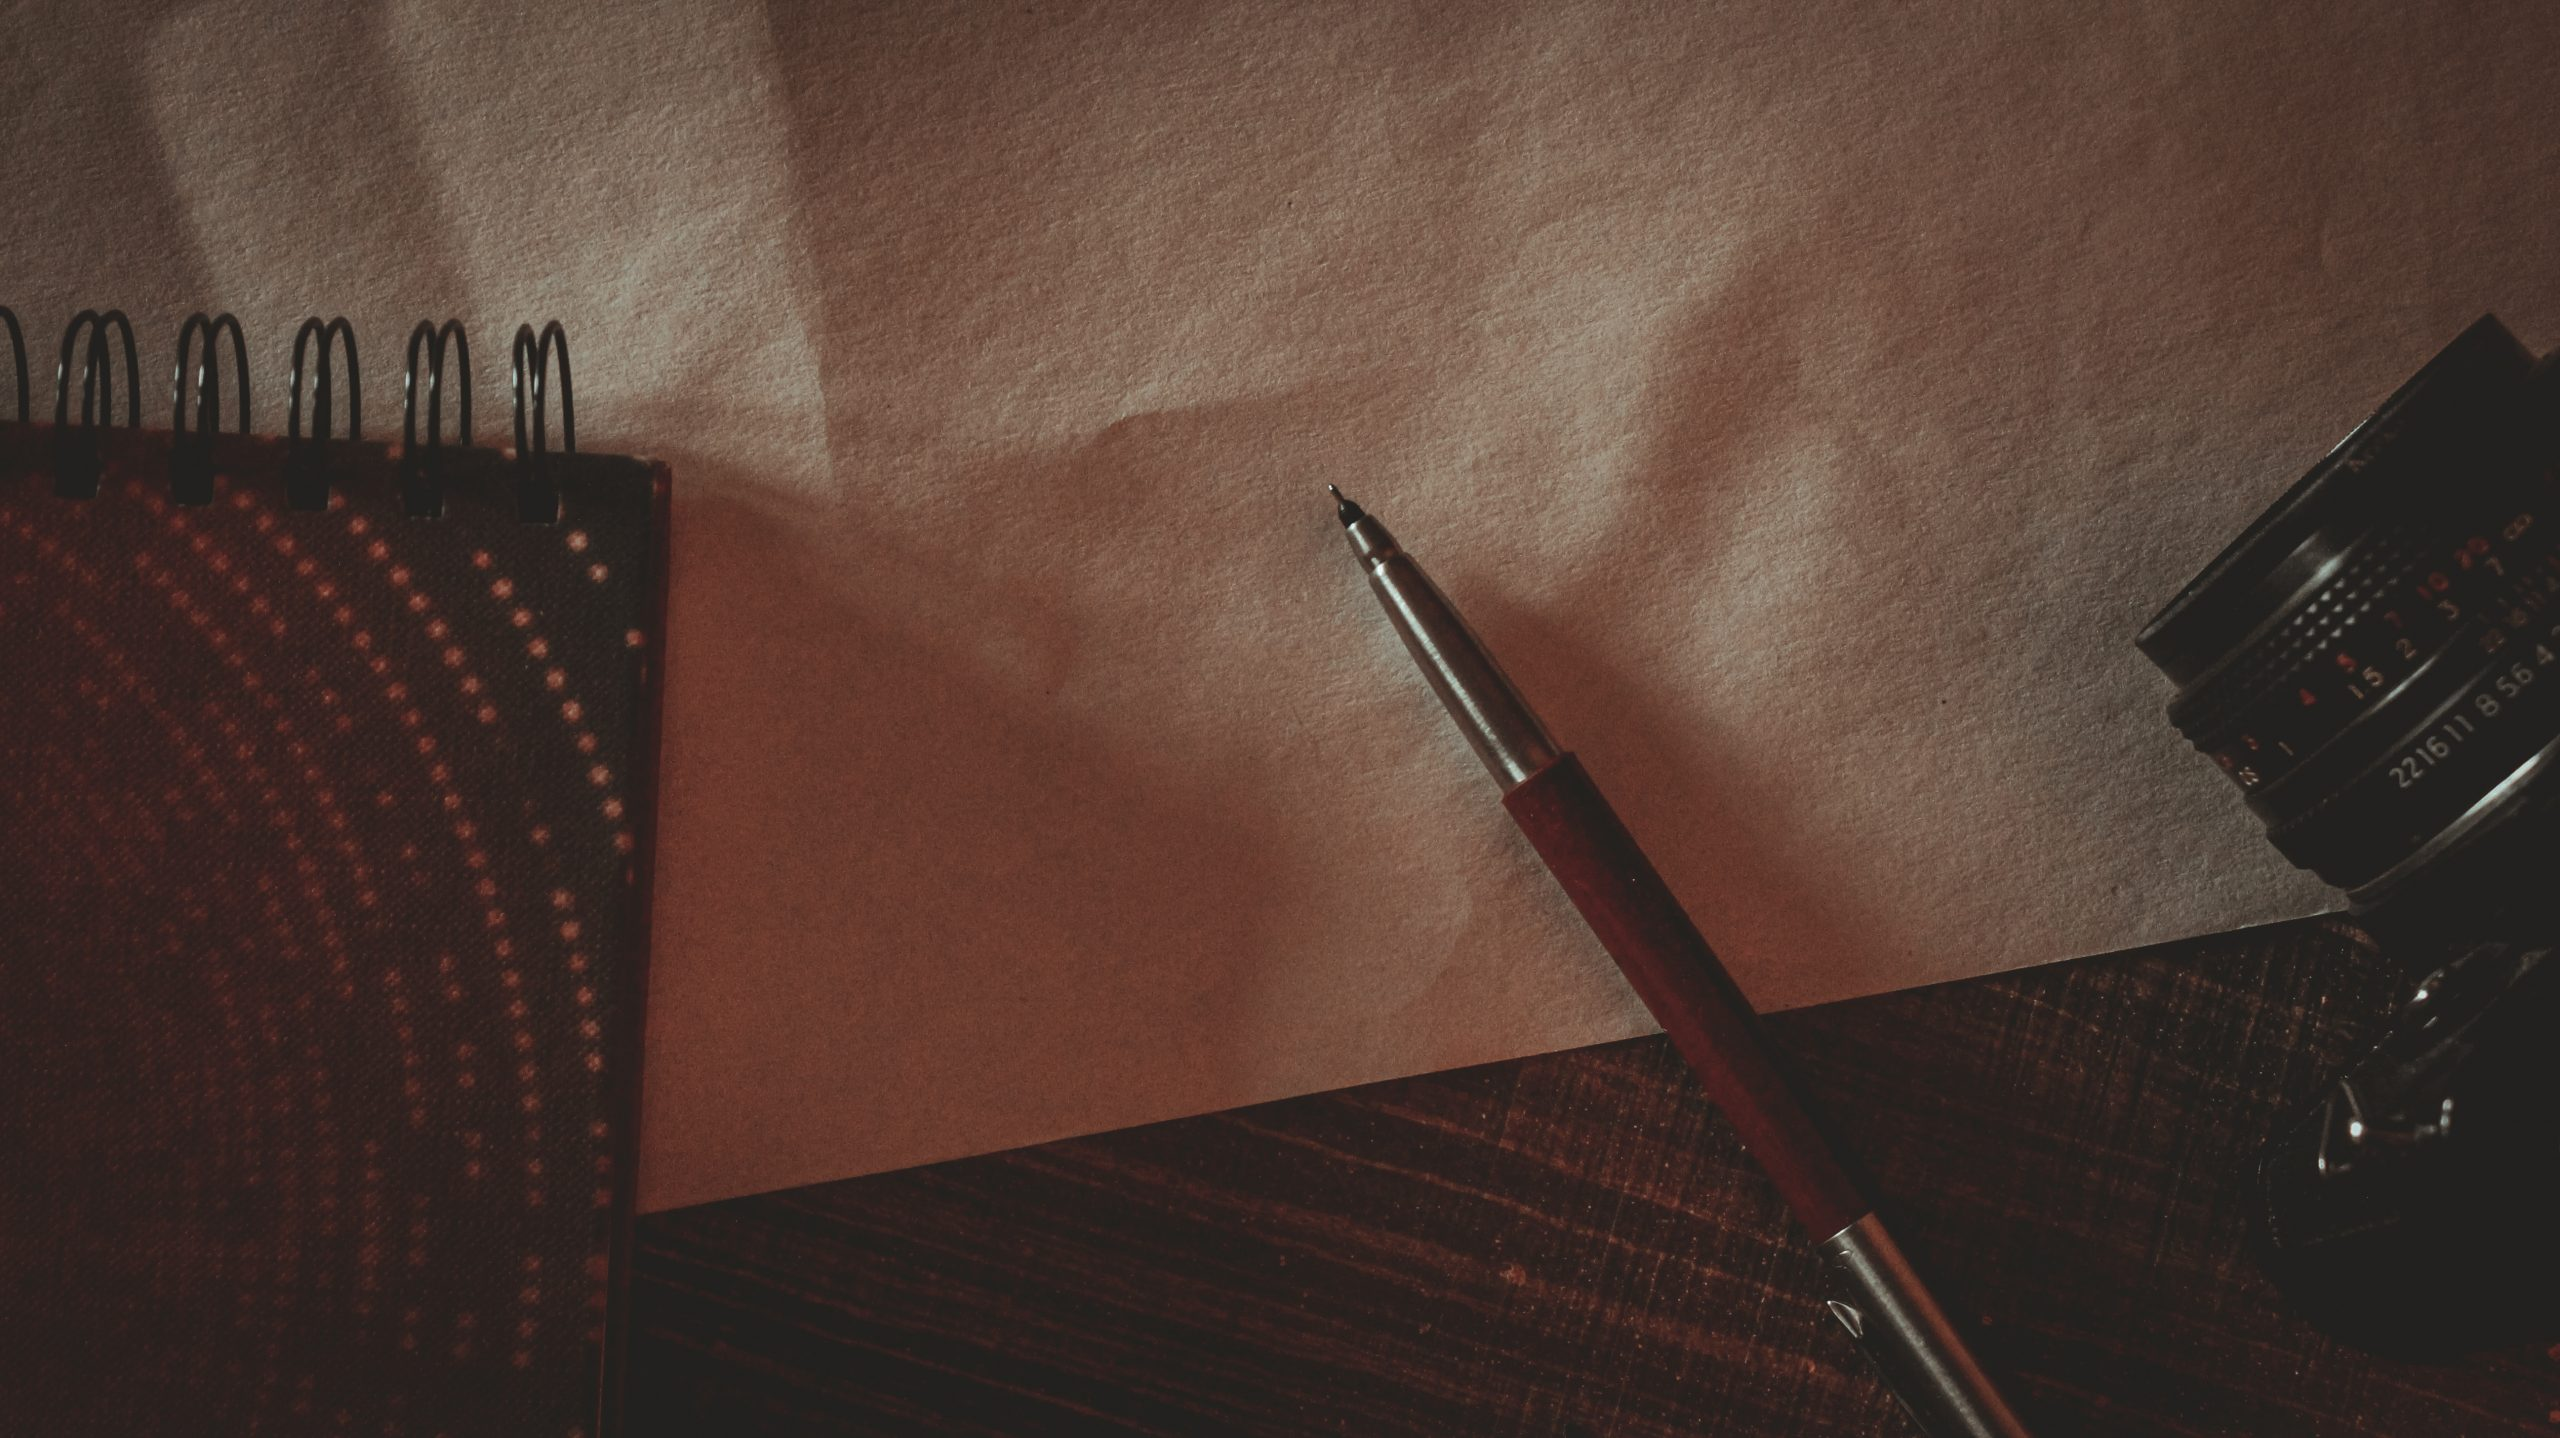 A pen and book